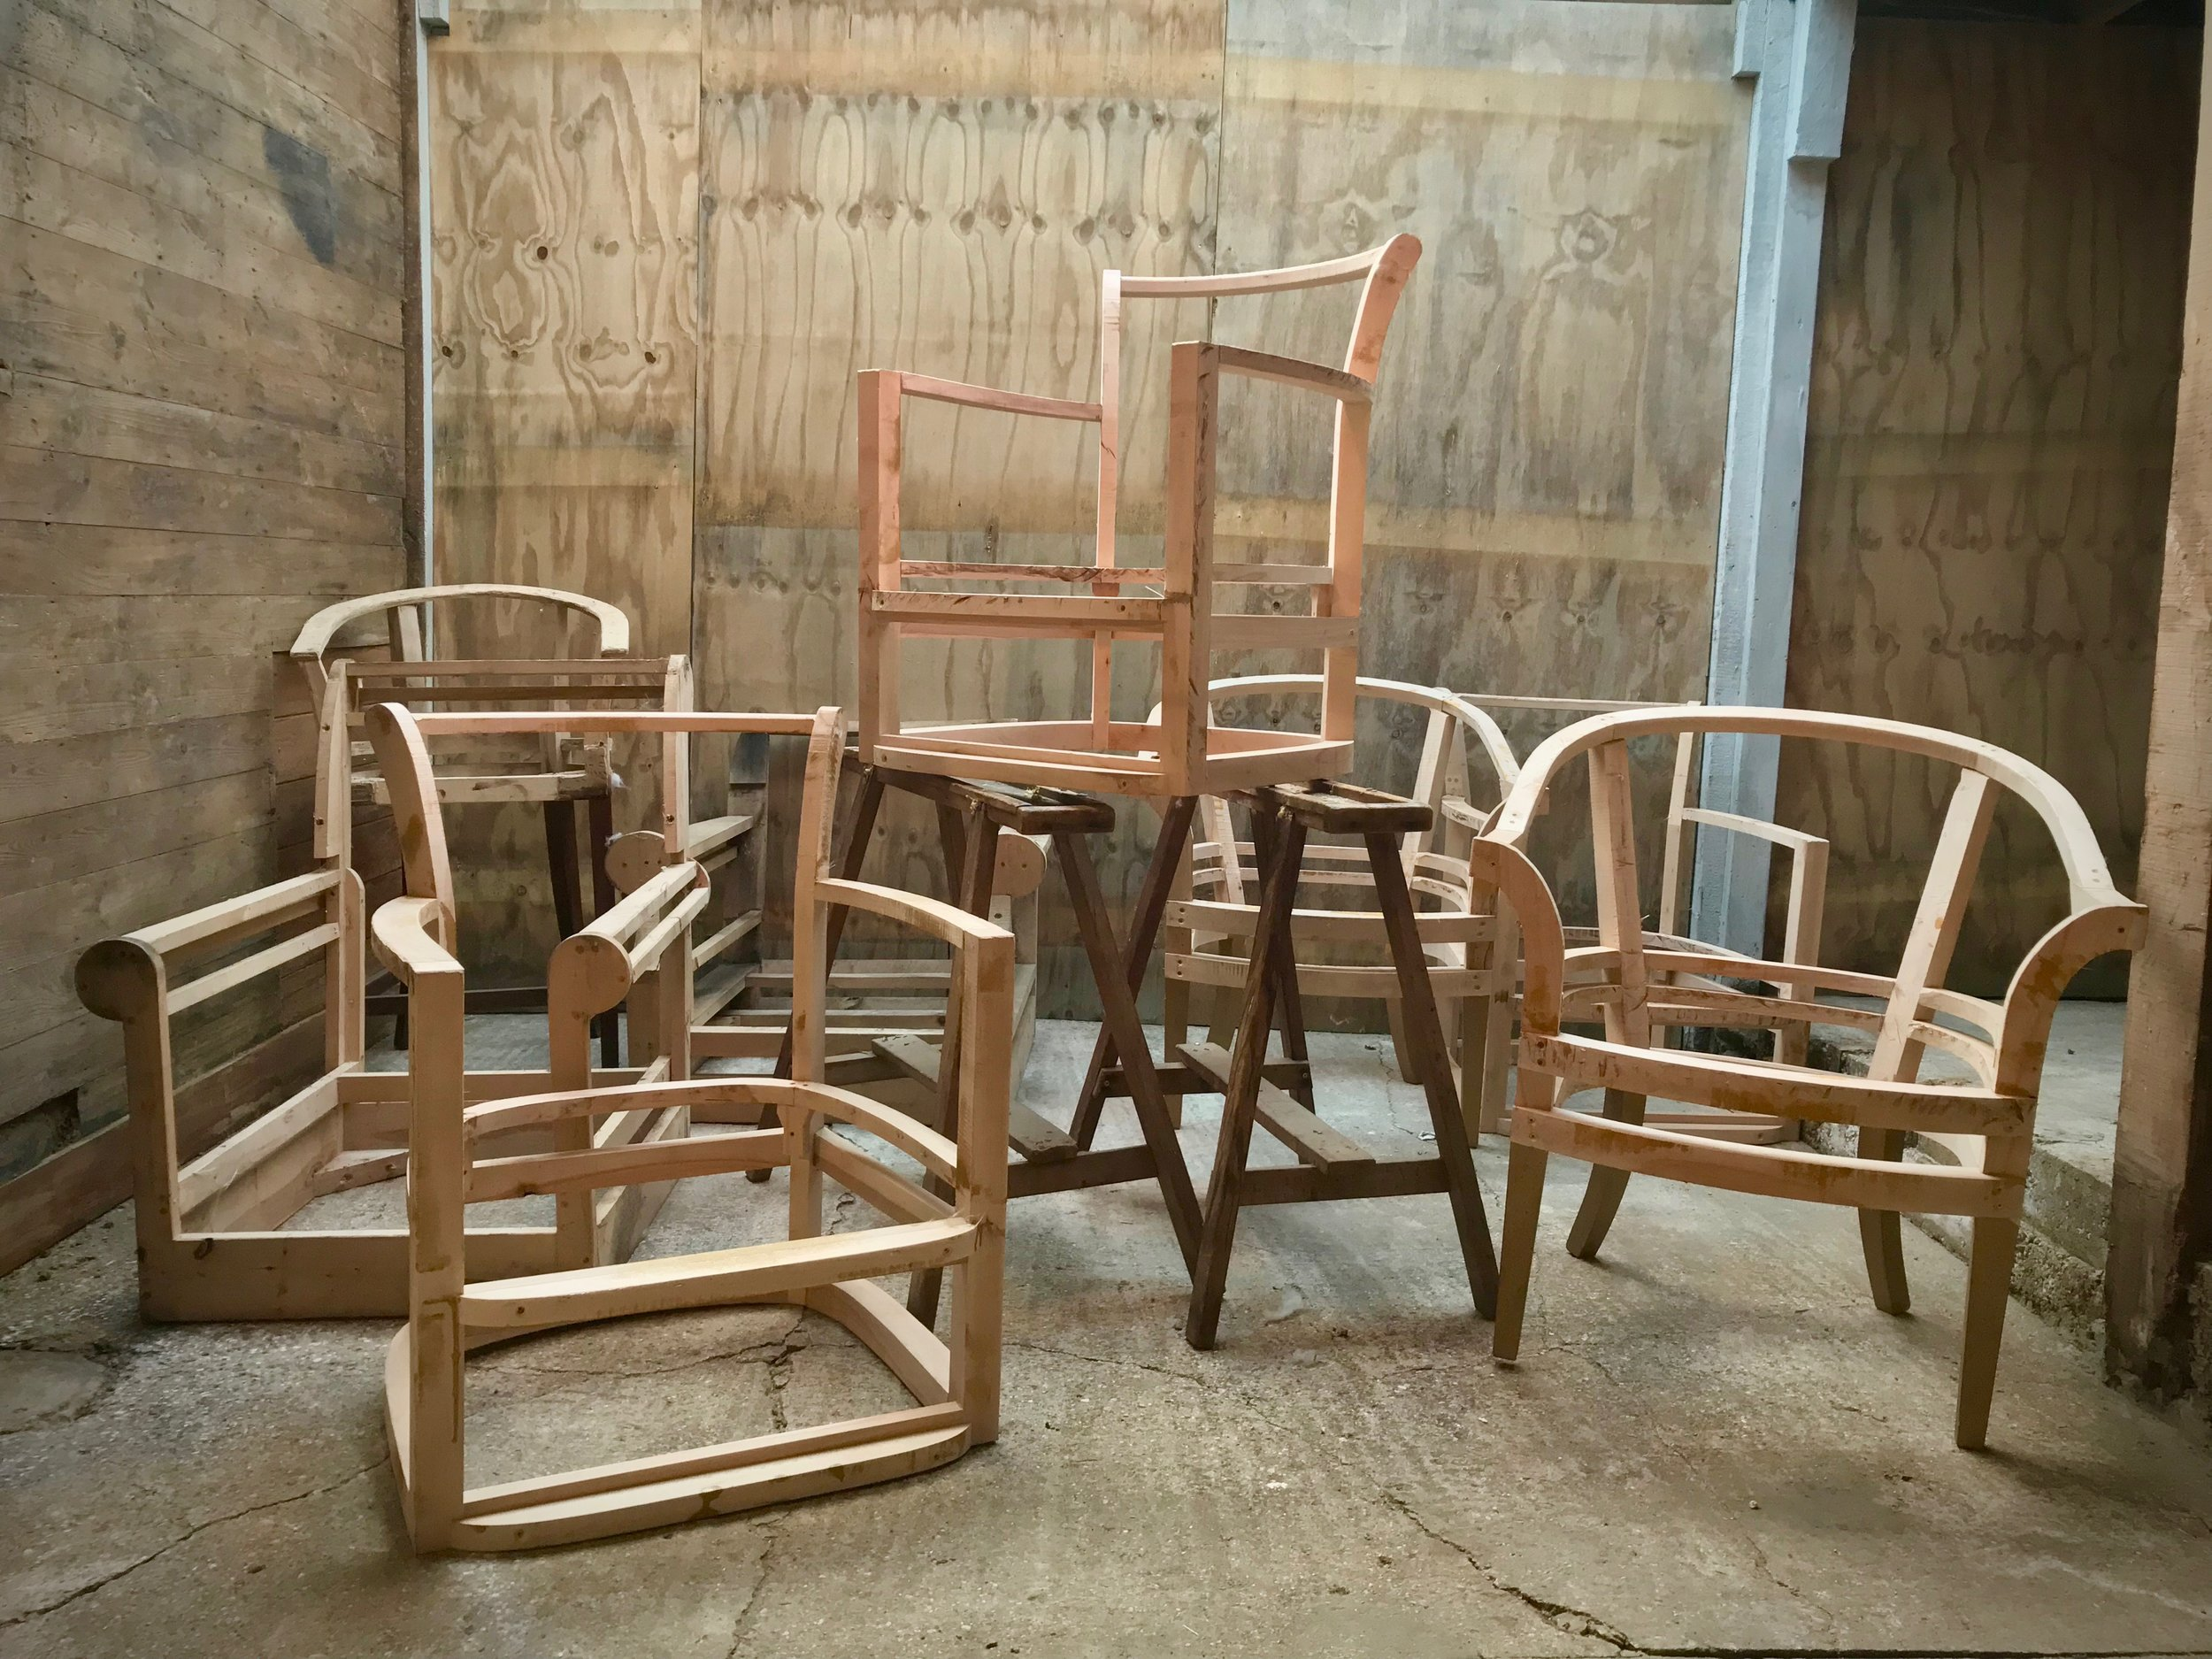 wooden chair frames for upholstery uk pushchair accessories bespoke furniture phoenix bedford example 2 beech